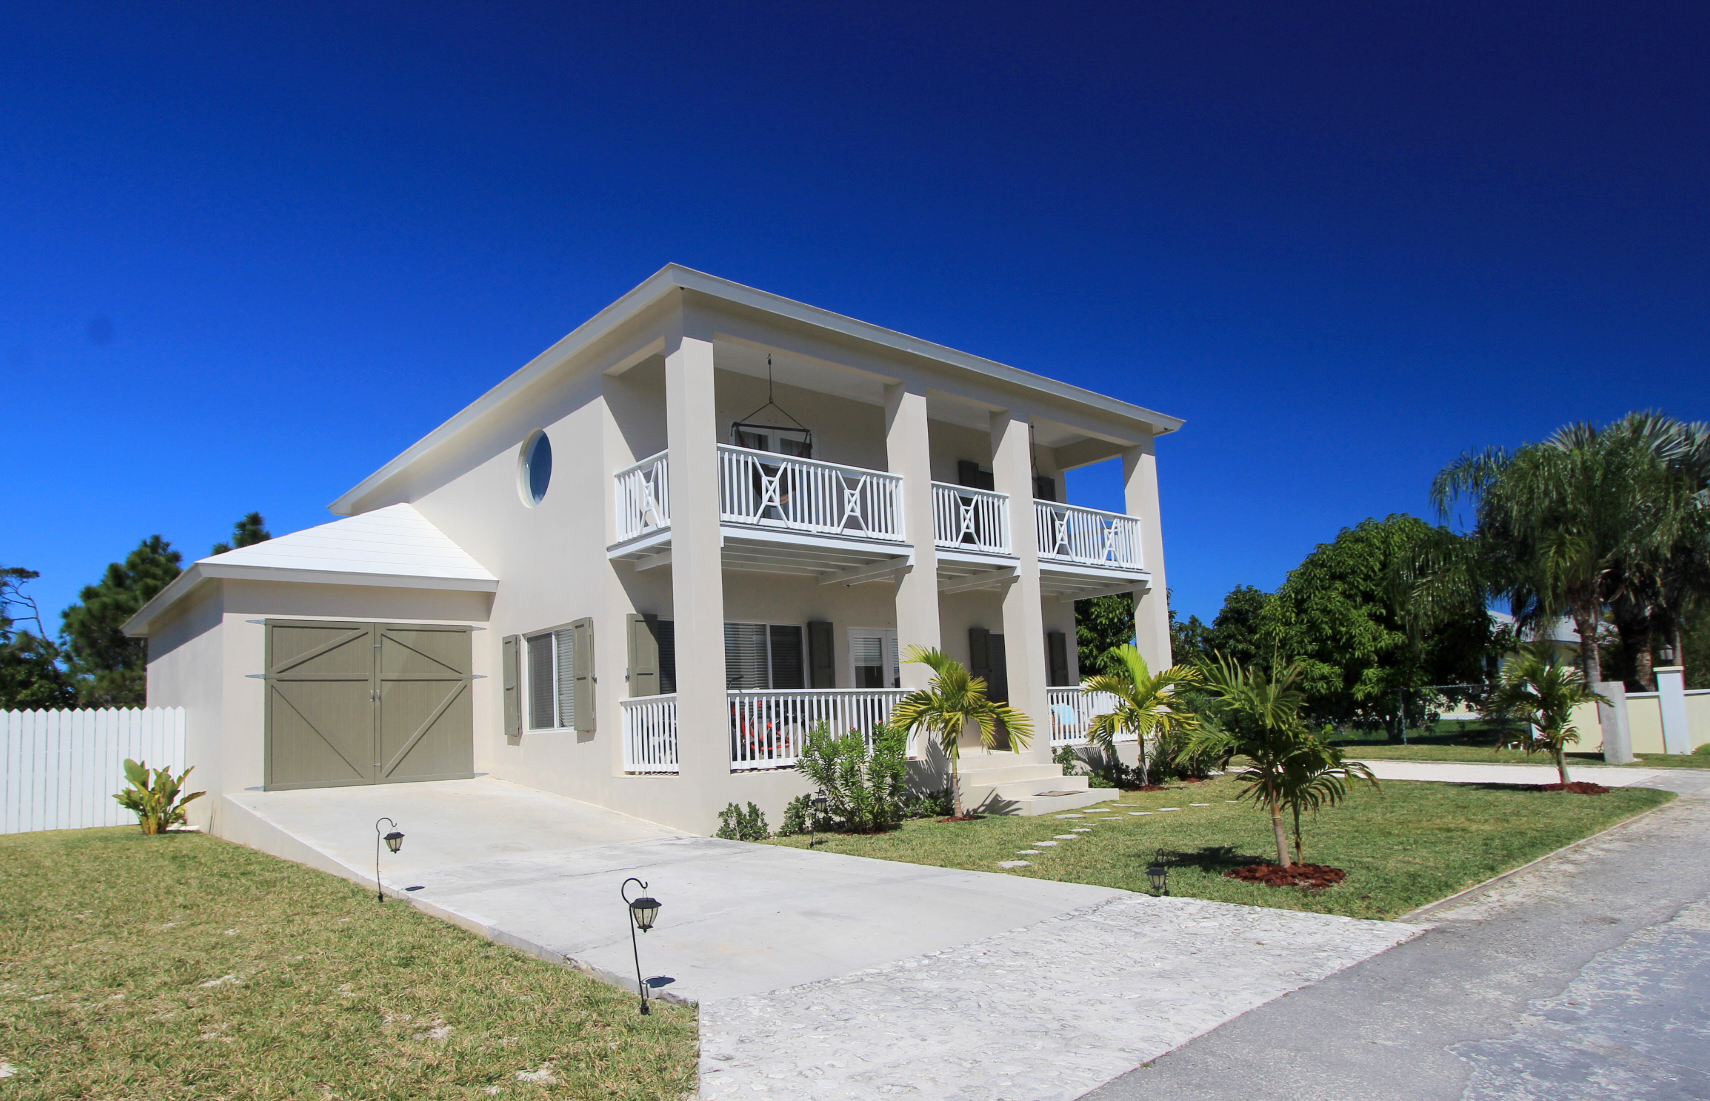 Single Family Home for Sale at Brand New Home In Peaceful Beachfront Community Marsh Harbour, Abaco, Bahamas